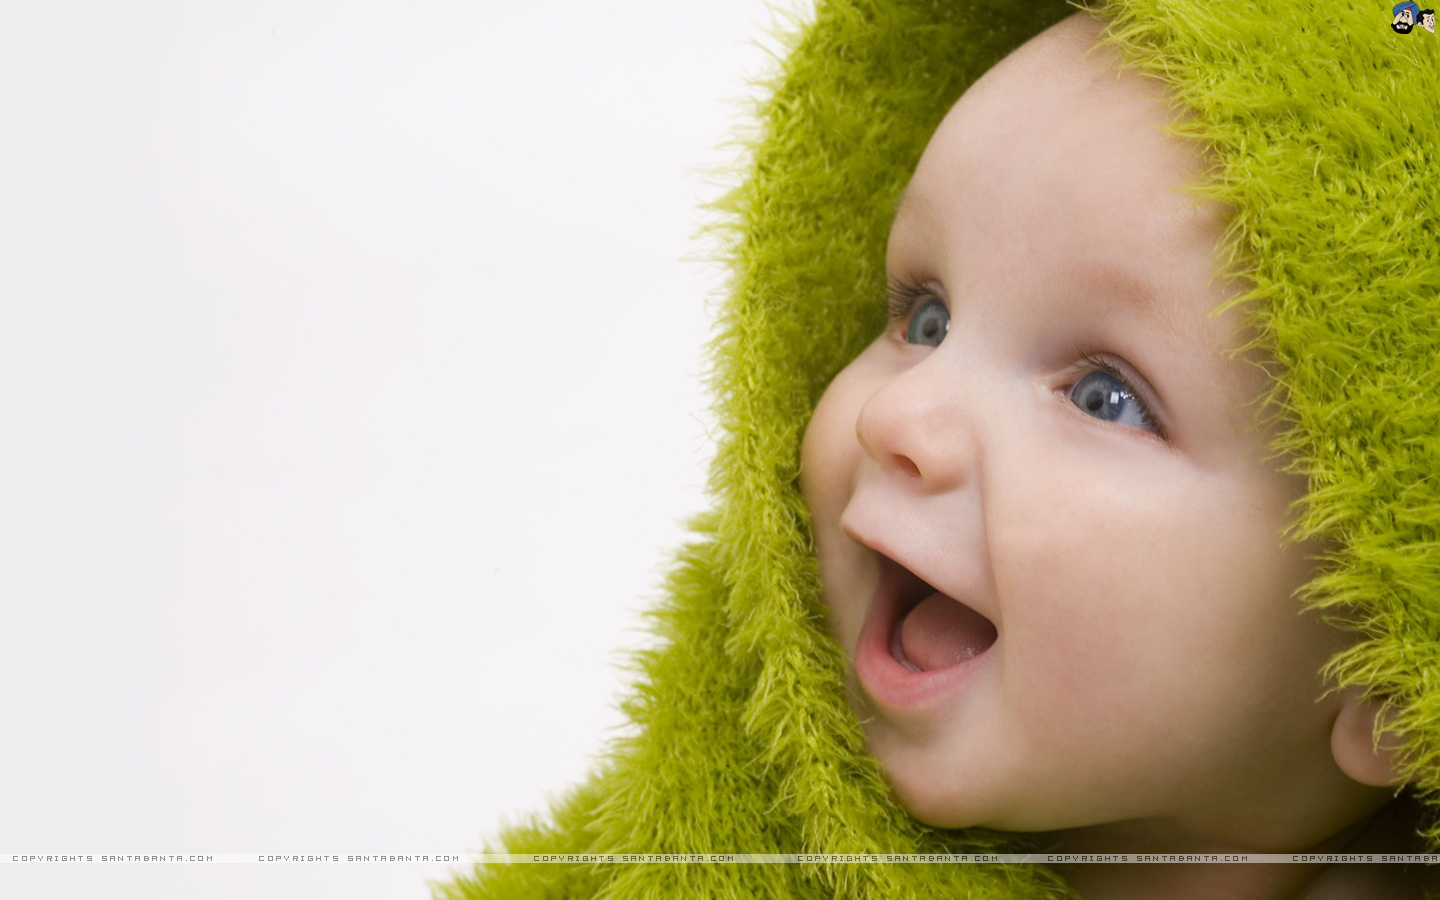 angels on earth childrens and kids wallpapers - Pictures Of Small Kids